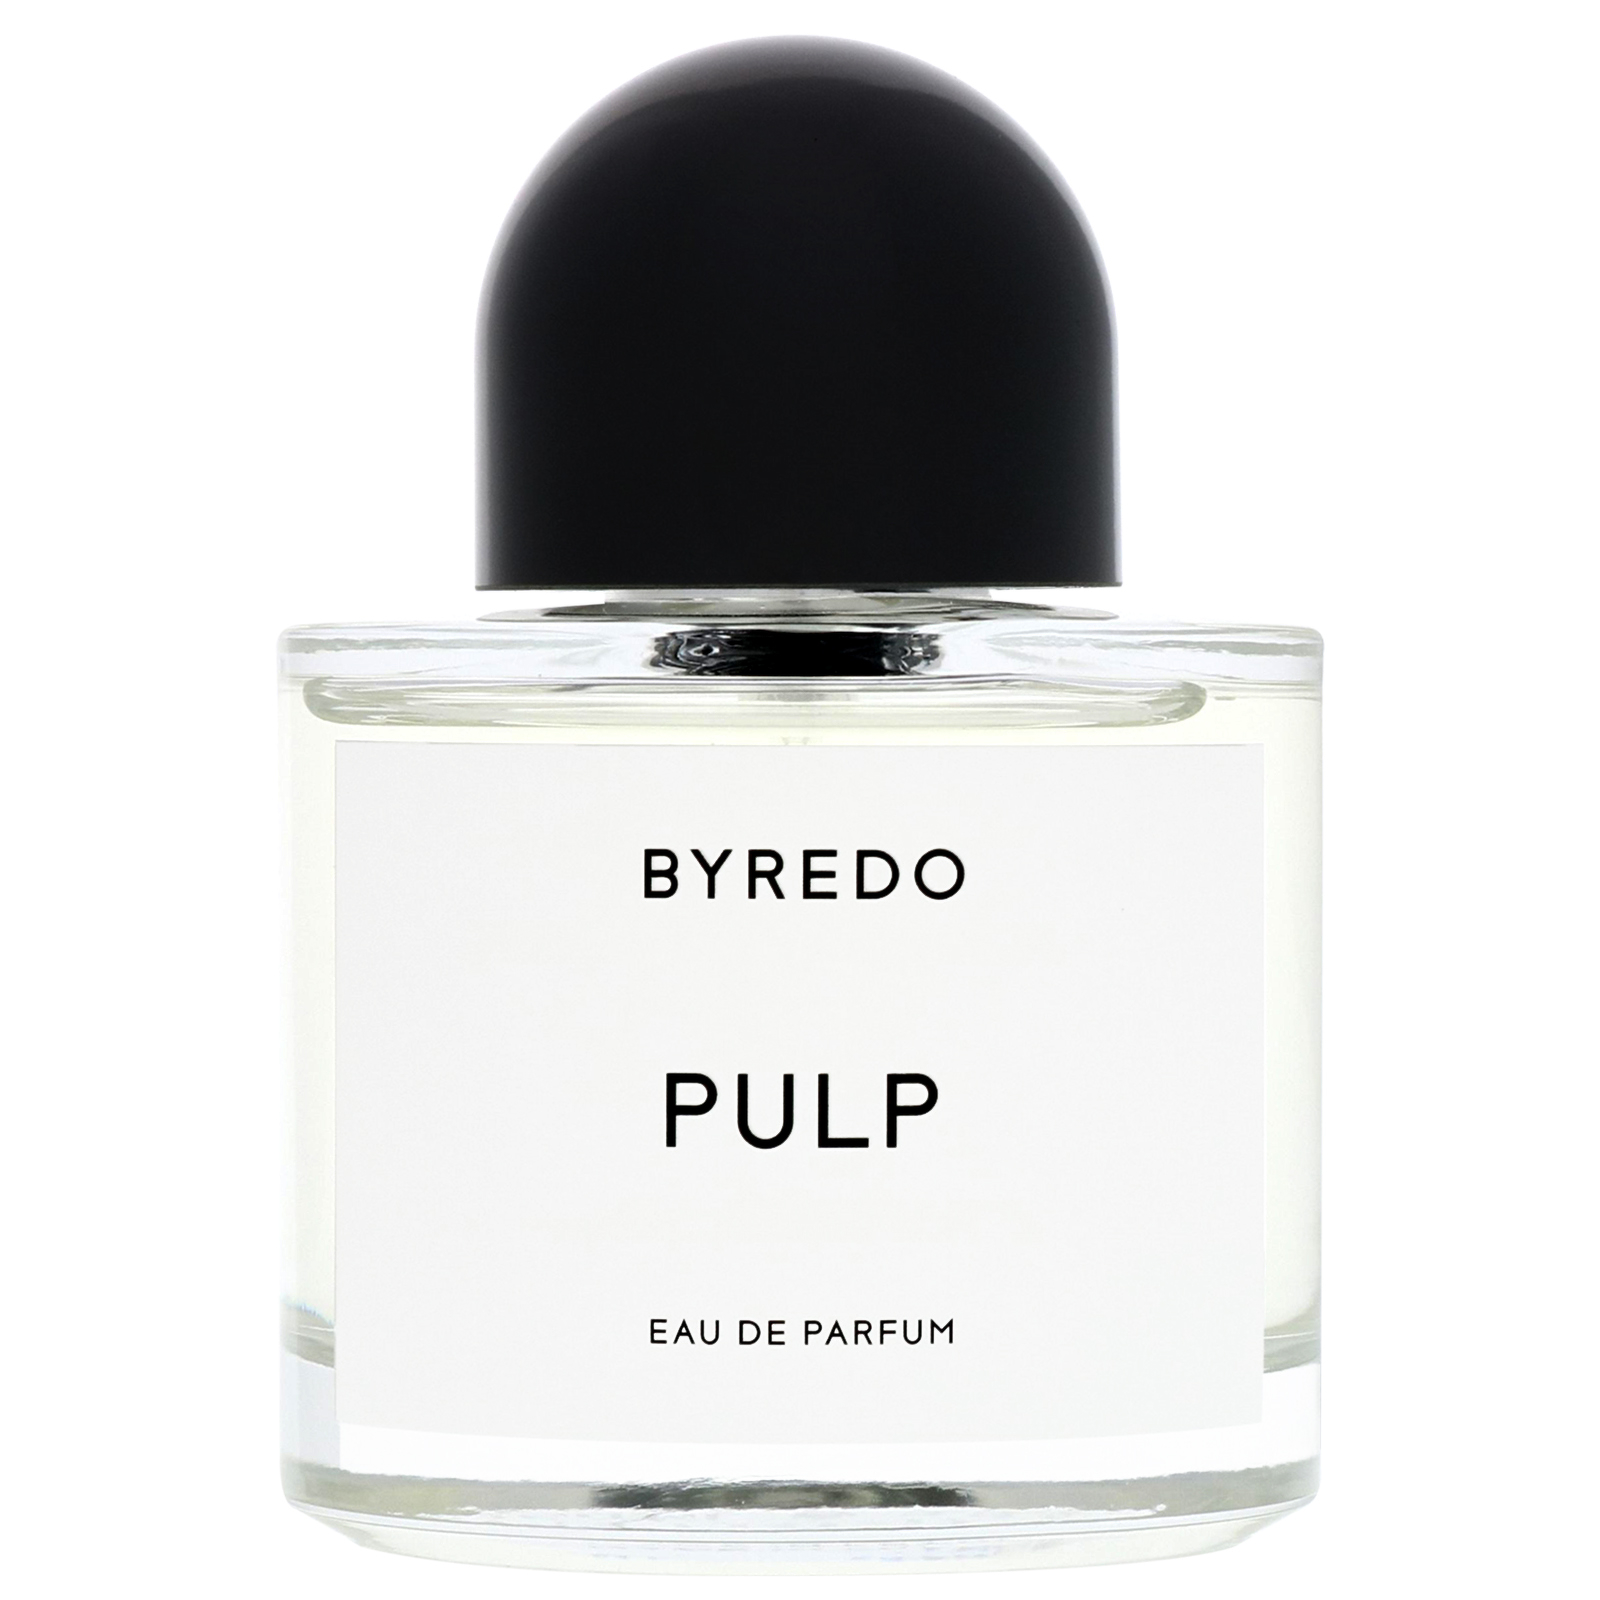 Byredo Pulp Eau de Parfum Spray 100ml